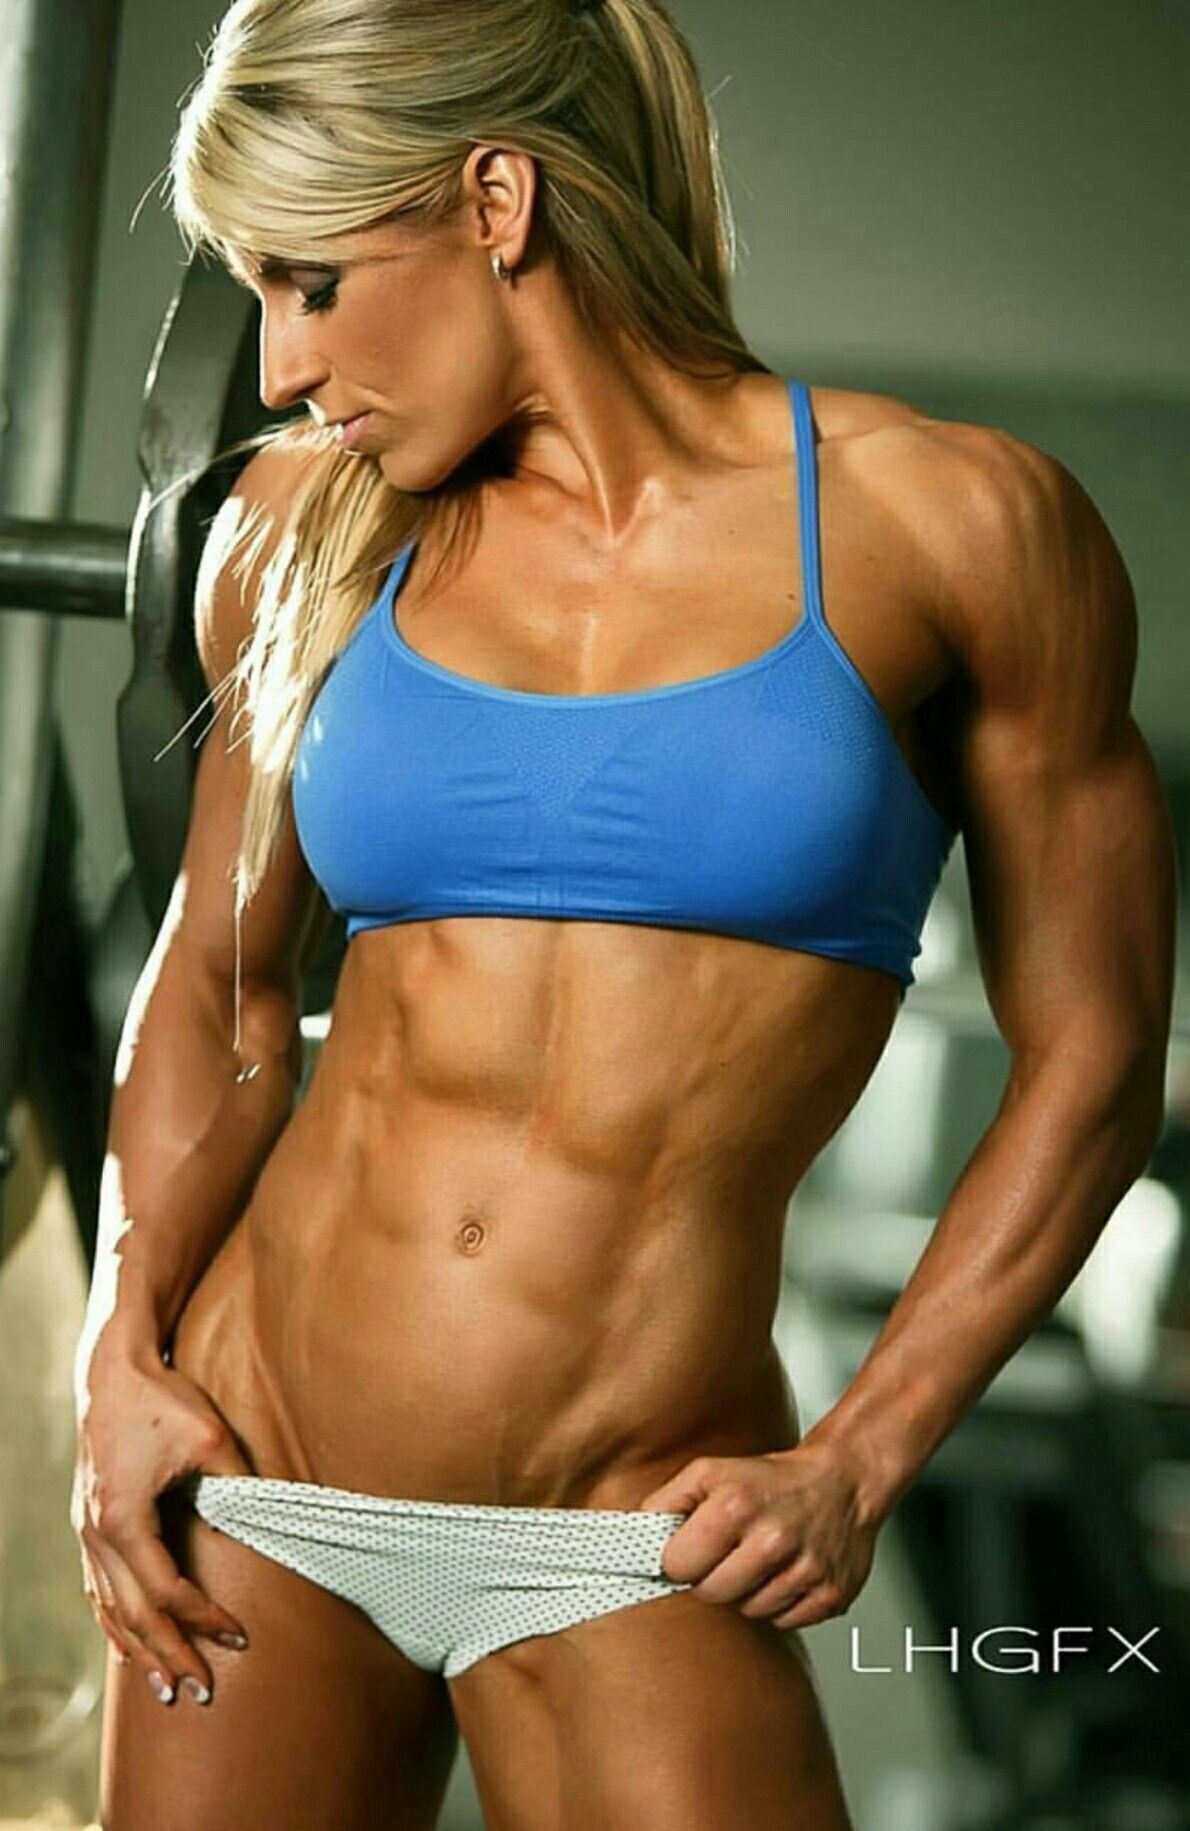 abby Female marie bodybuilder